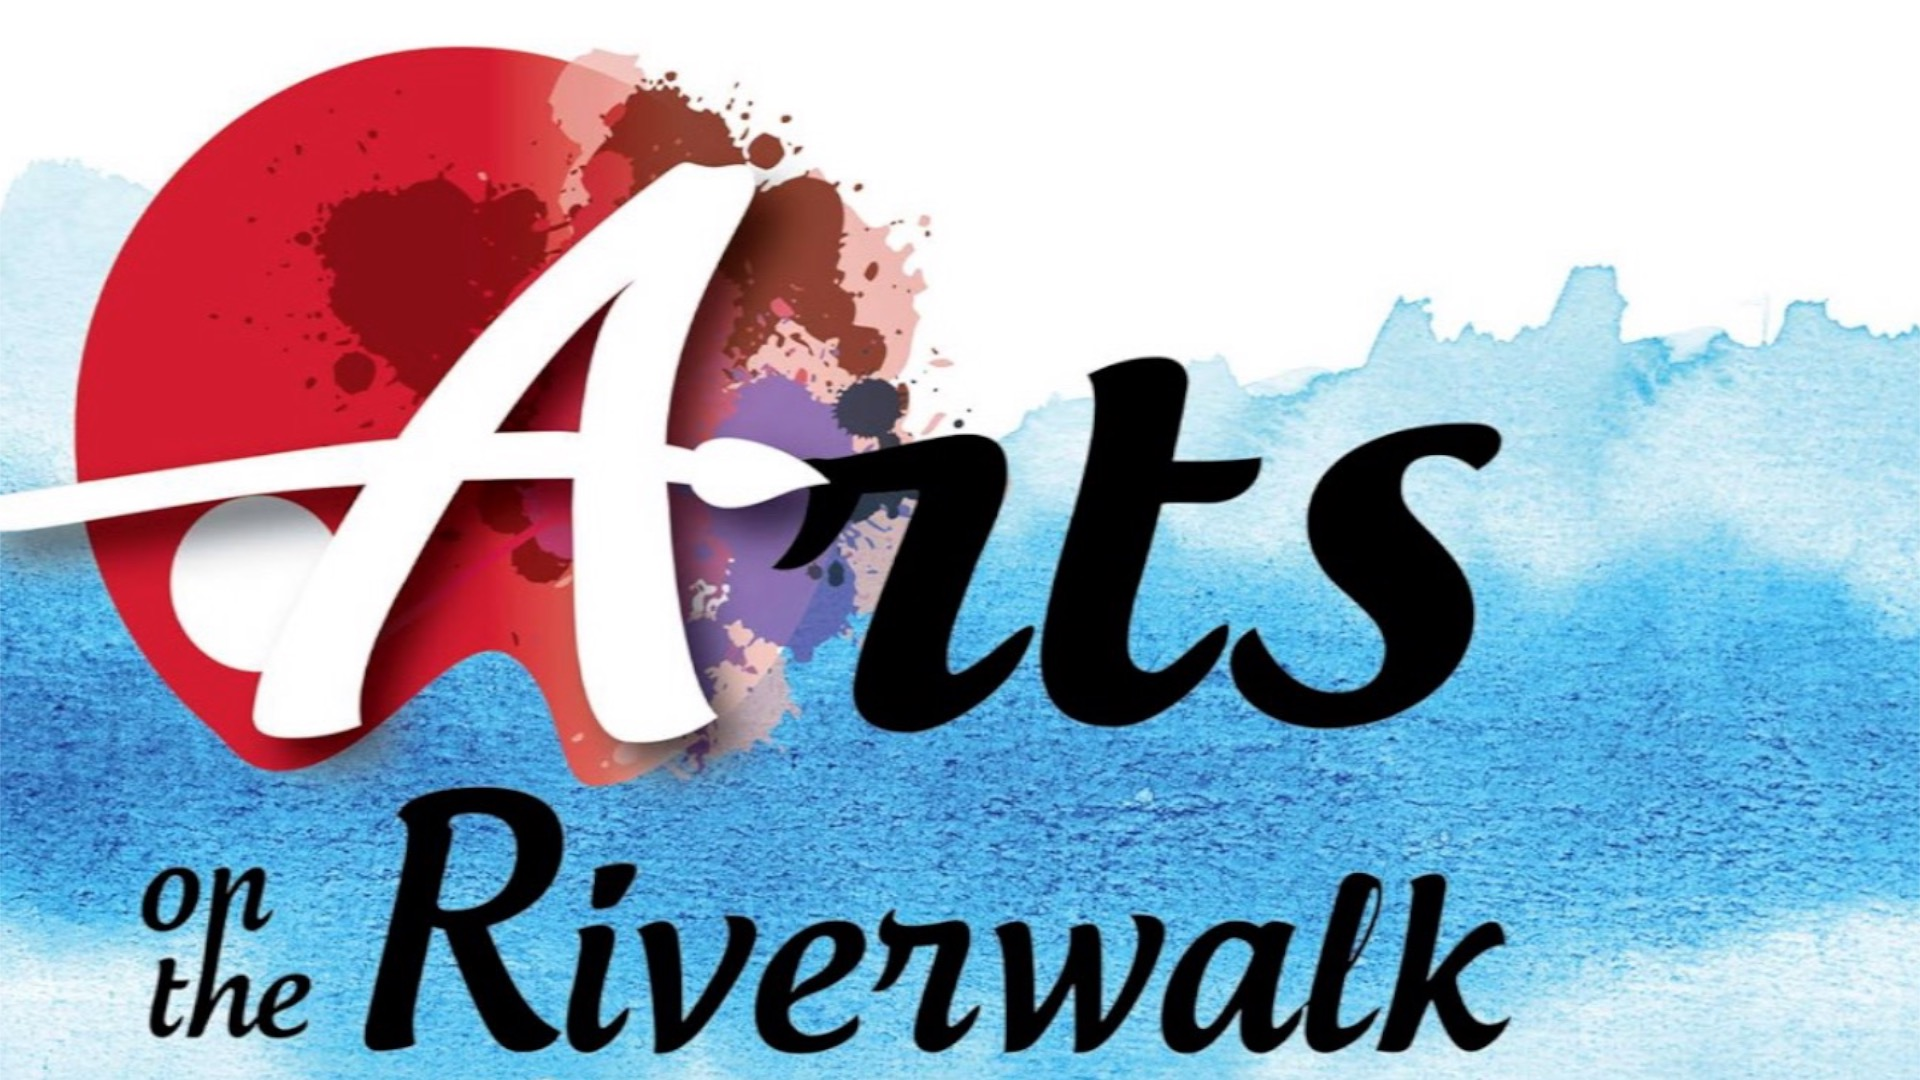 Art Meets Science on the Riverwalk